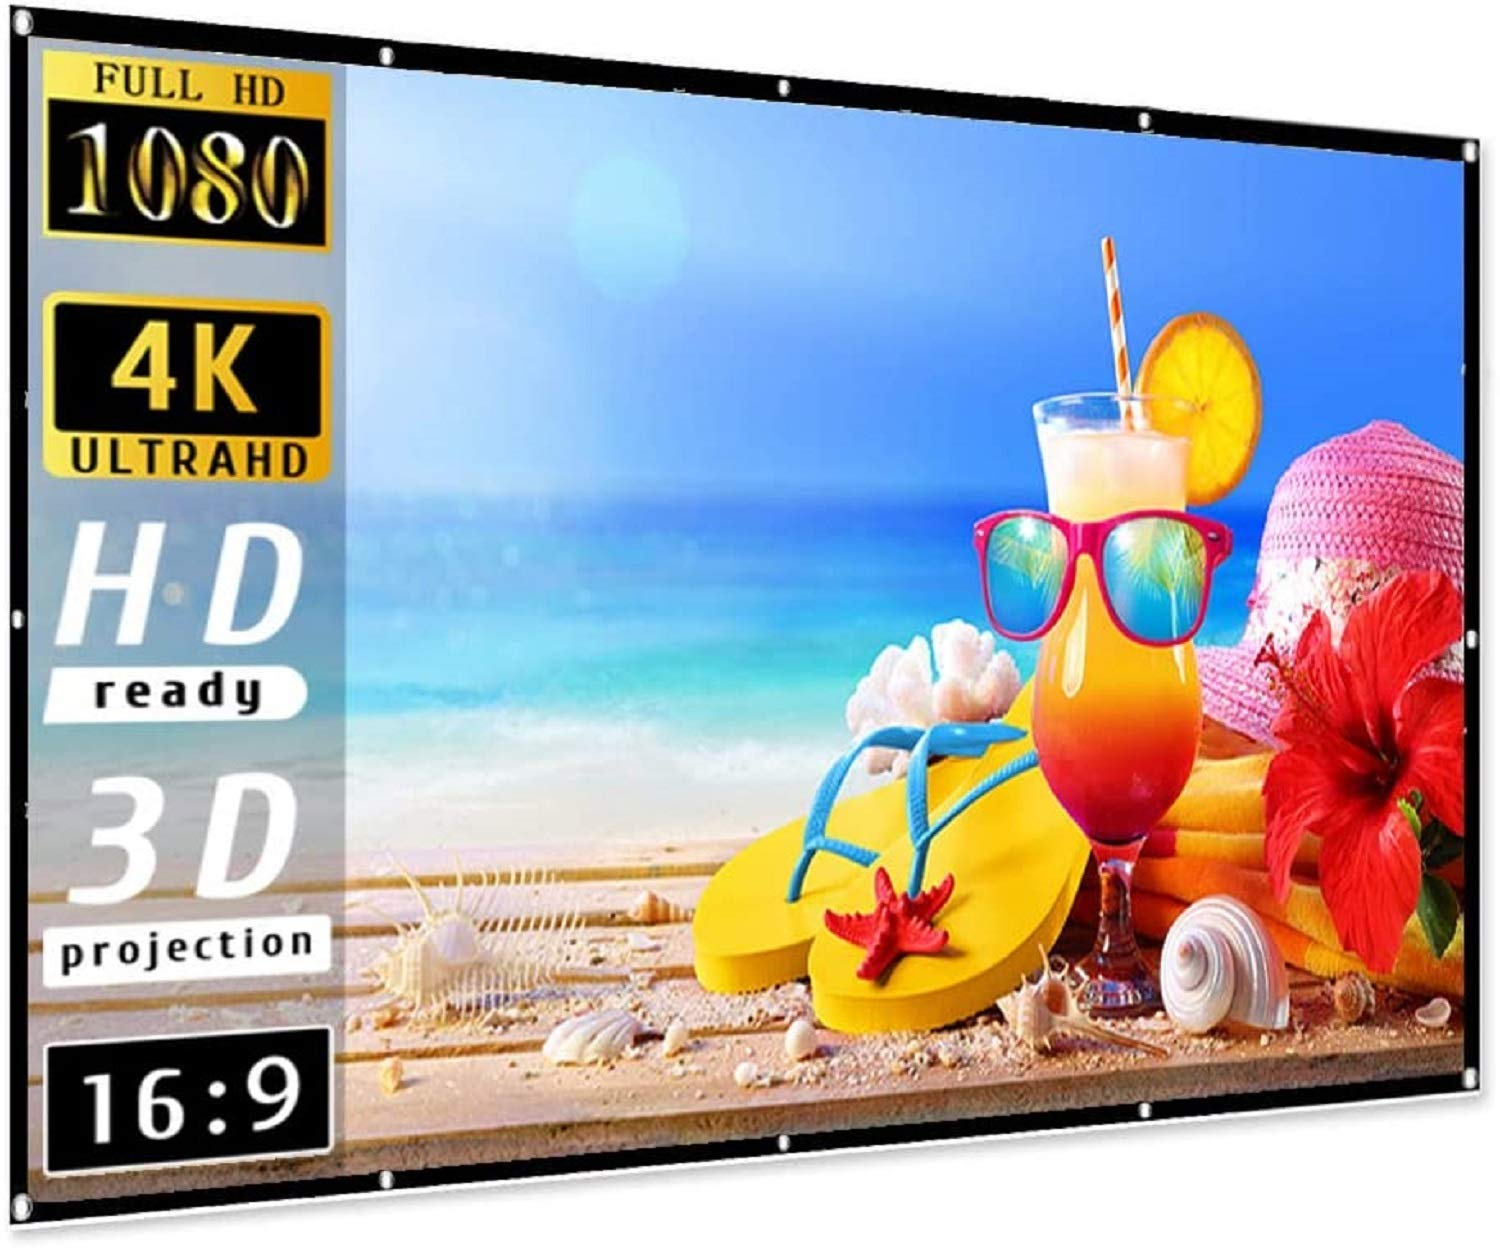 RANWAR 120 Inch Projector Screen 16:09 HD Foldable Anti-Crease Portable Projector Movies Screen for Home Theater